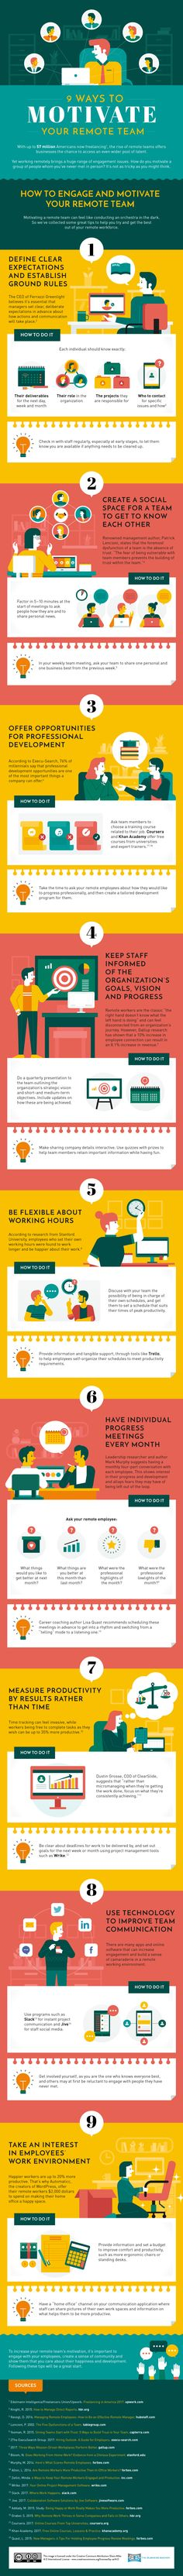 9 Ways to Motivate Your Remote Team - #infographic